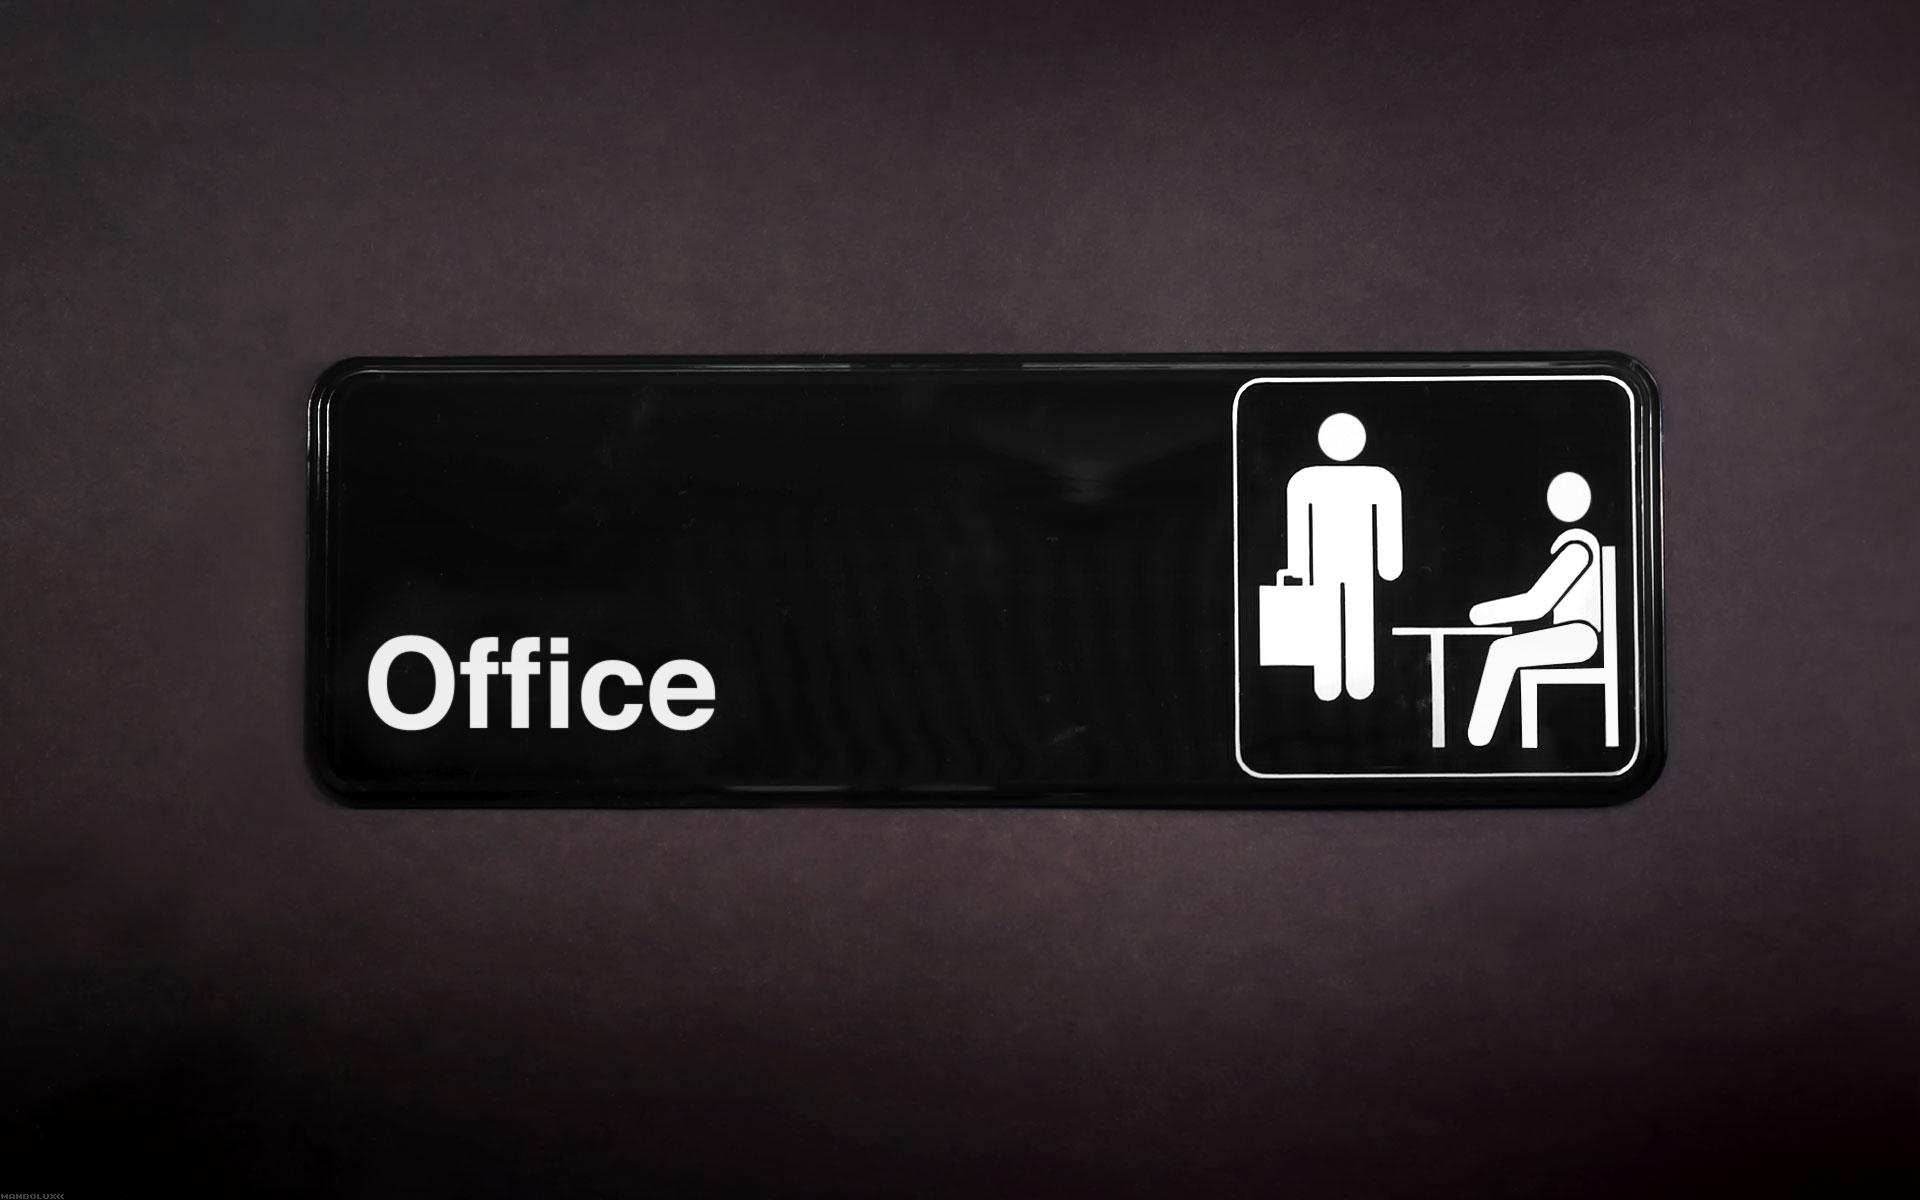 free office wallpaper pc. 10 Top The Office Wallpaper 1920X1080 FULL HD 1920×1080 For PC Desktop 2018 Free Pc C